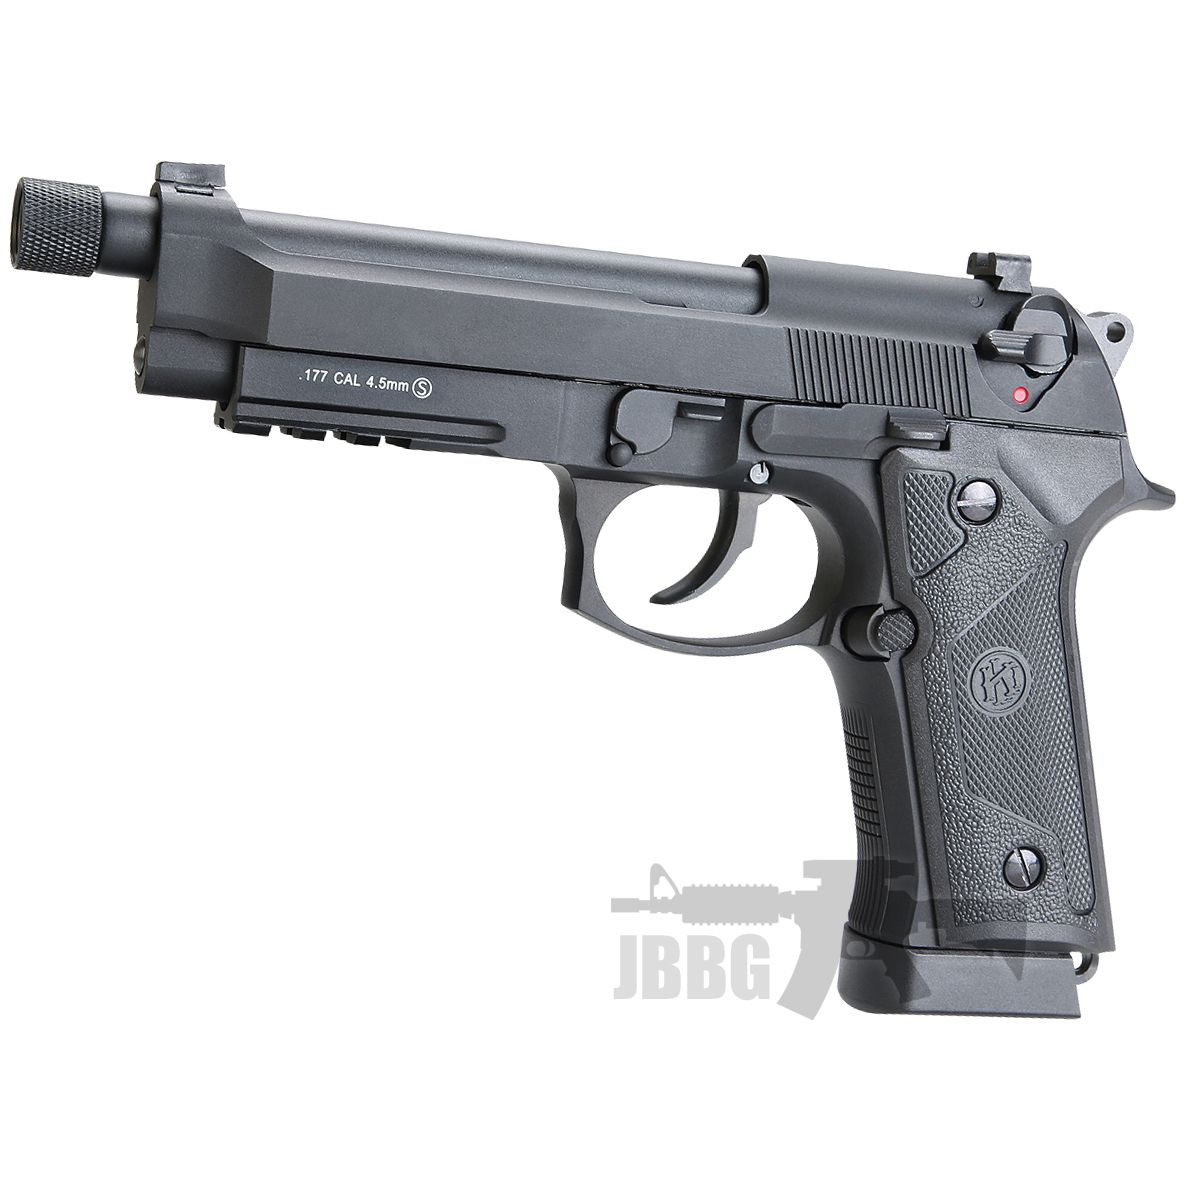 KL M92 Co2 Blowback Air Pistol with Threaded Barrel